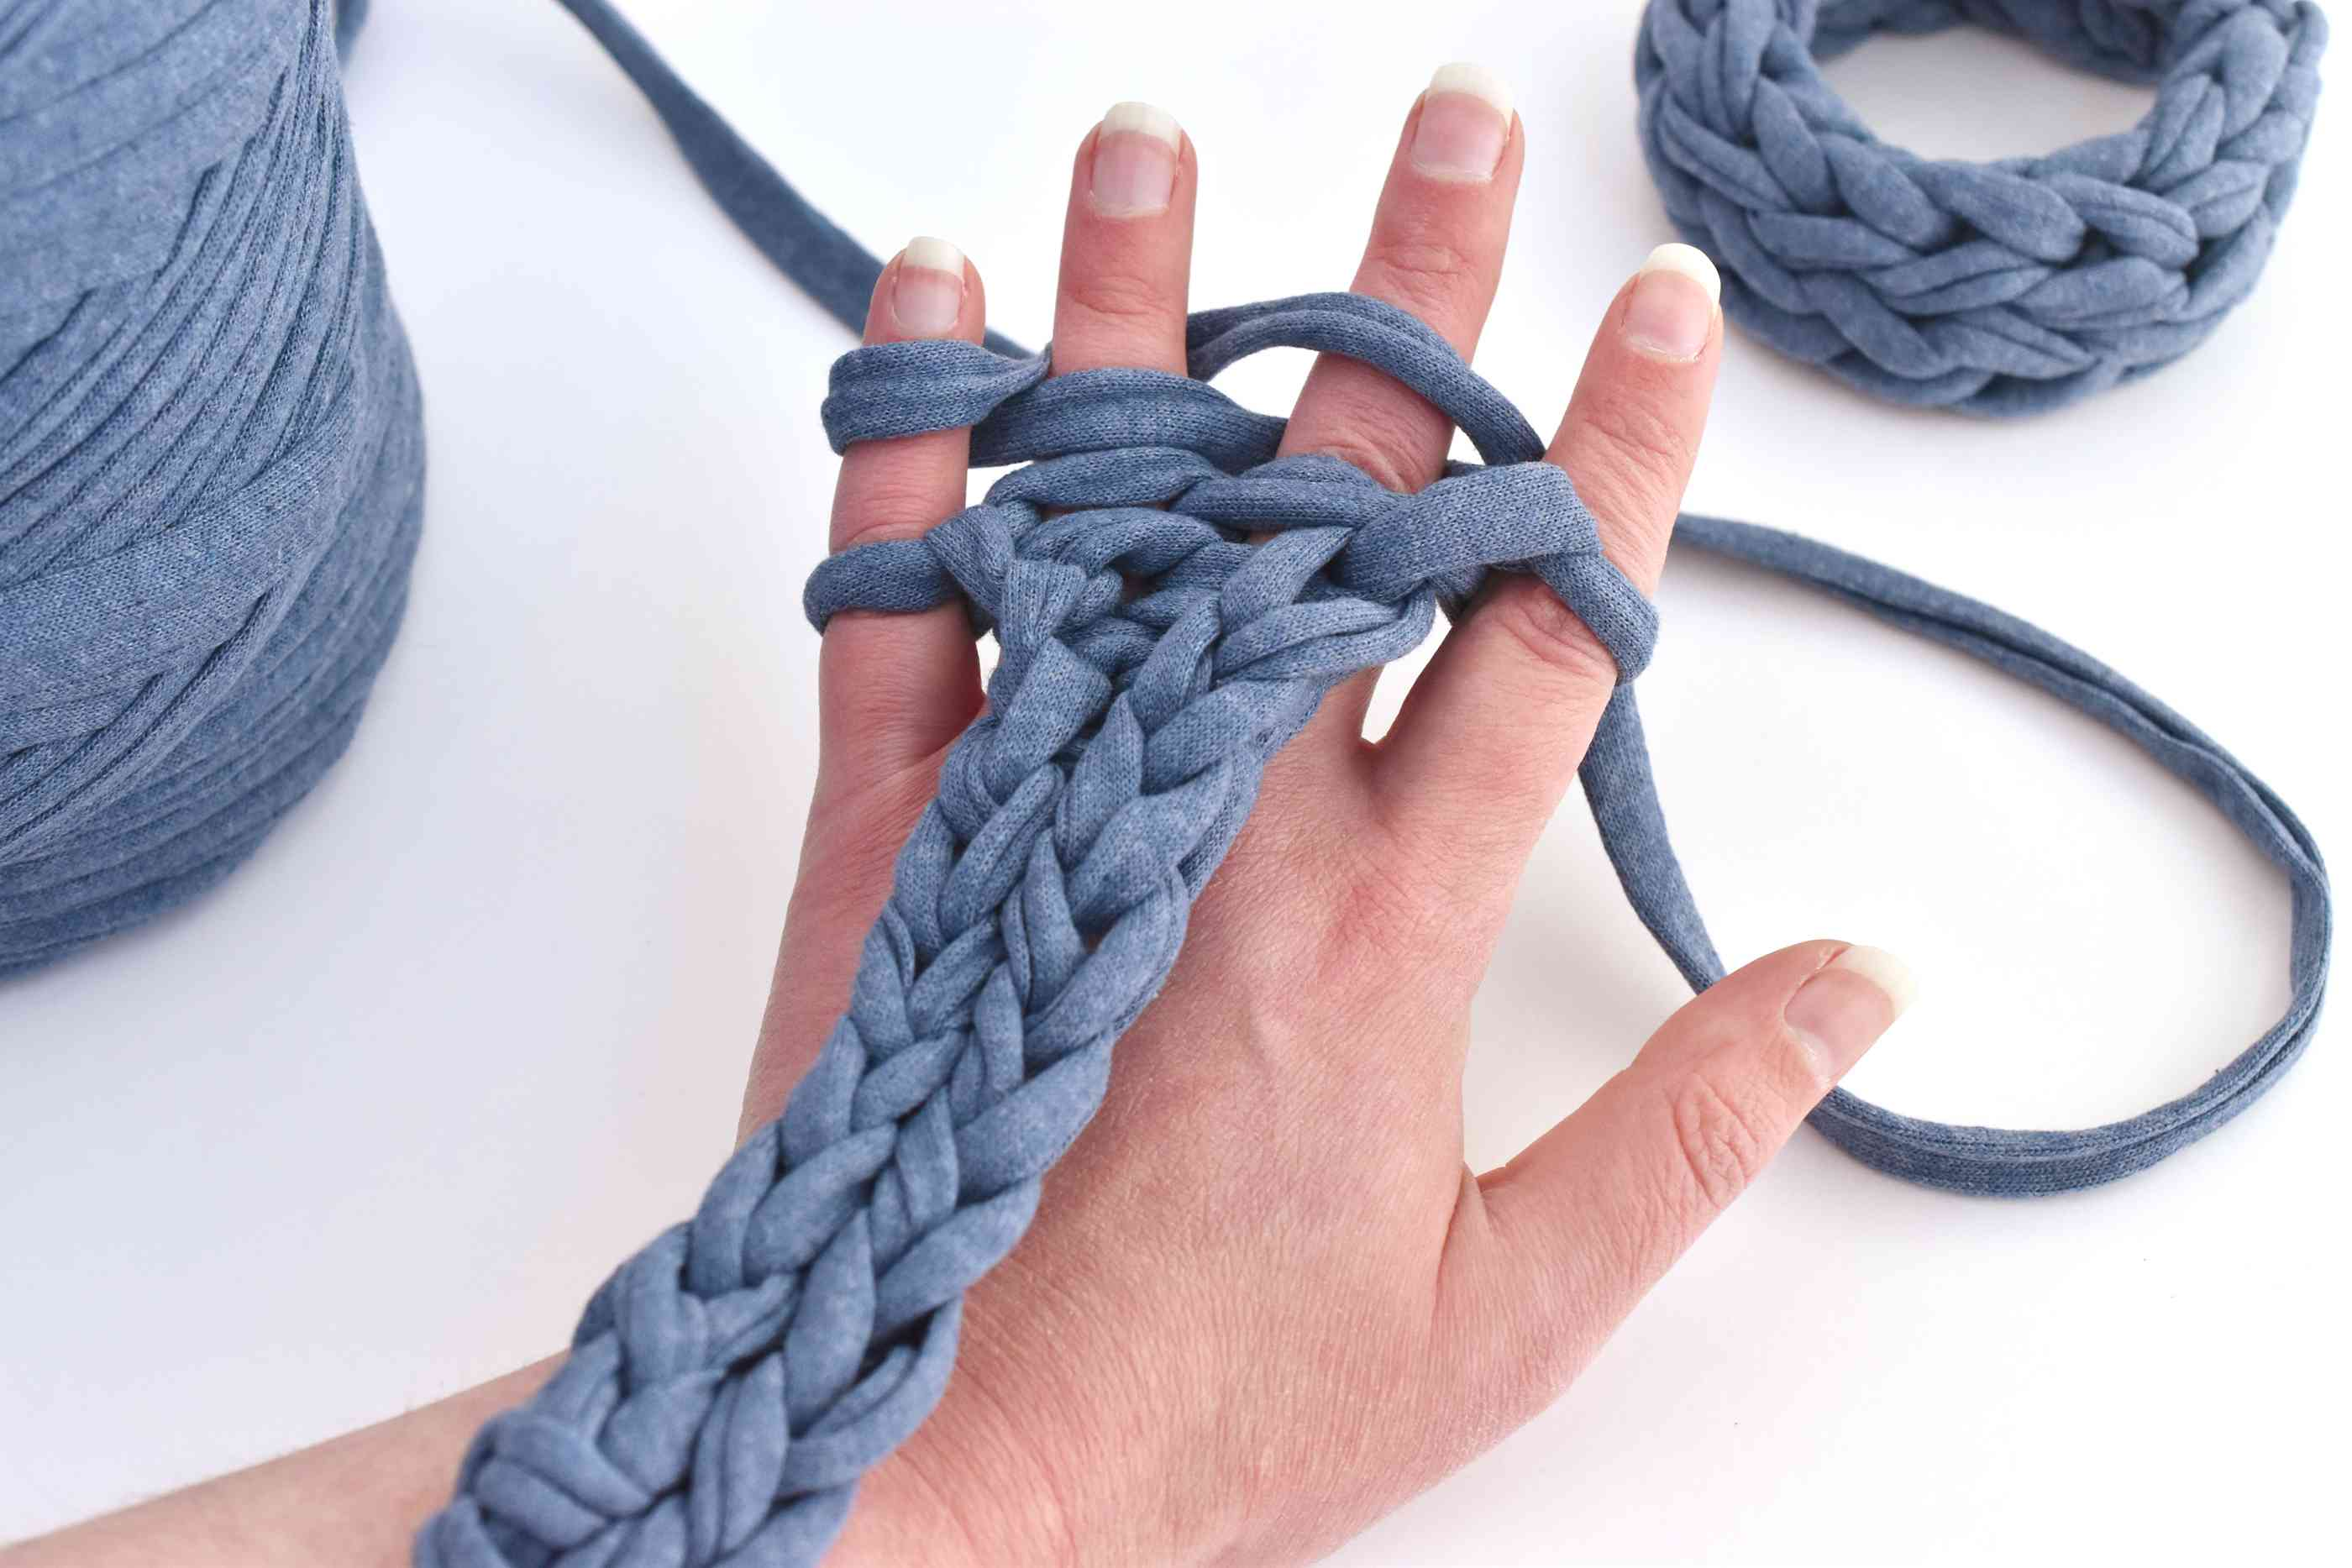 How to Knit on Your Fingers